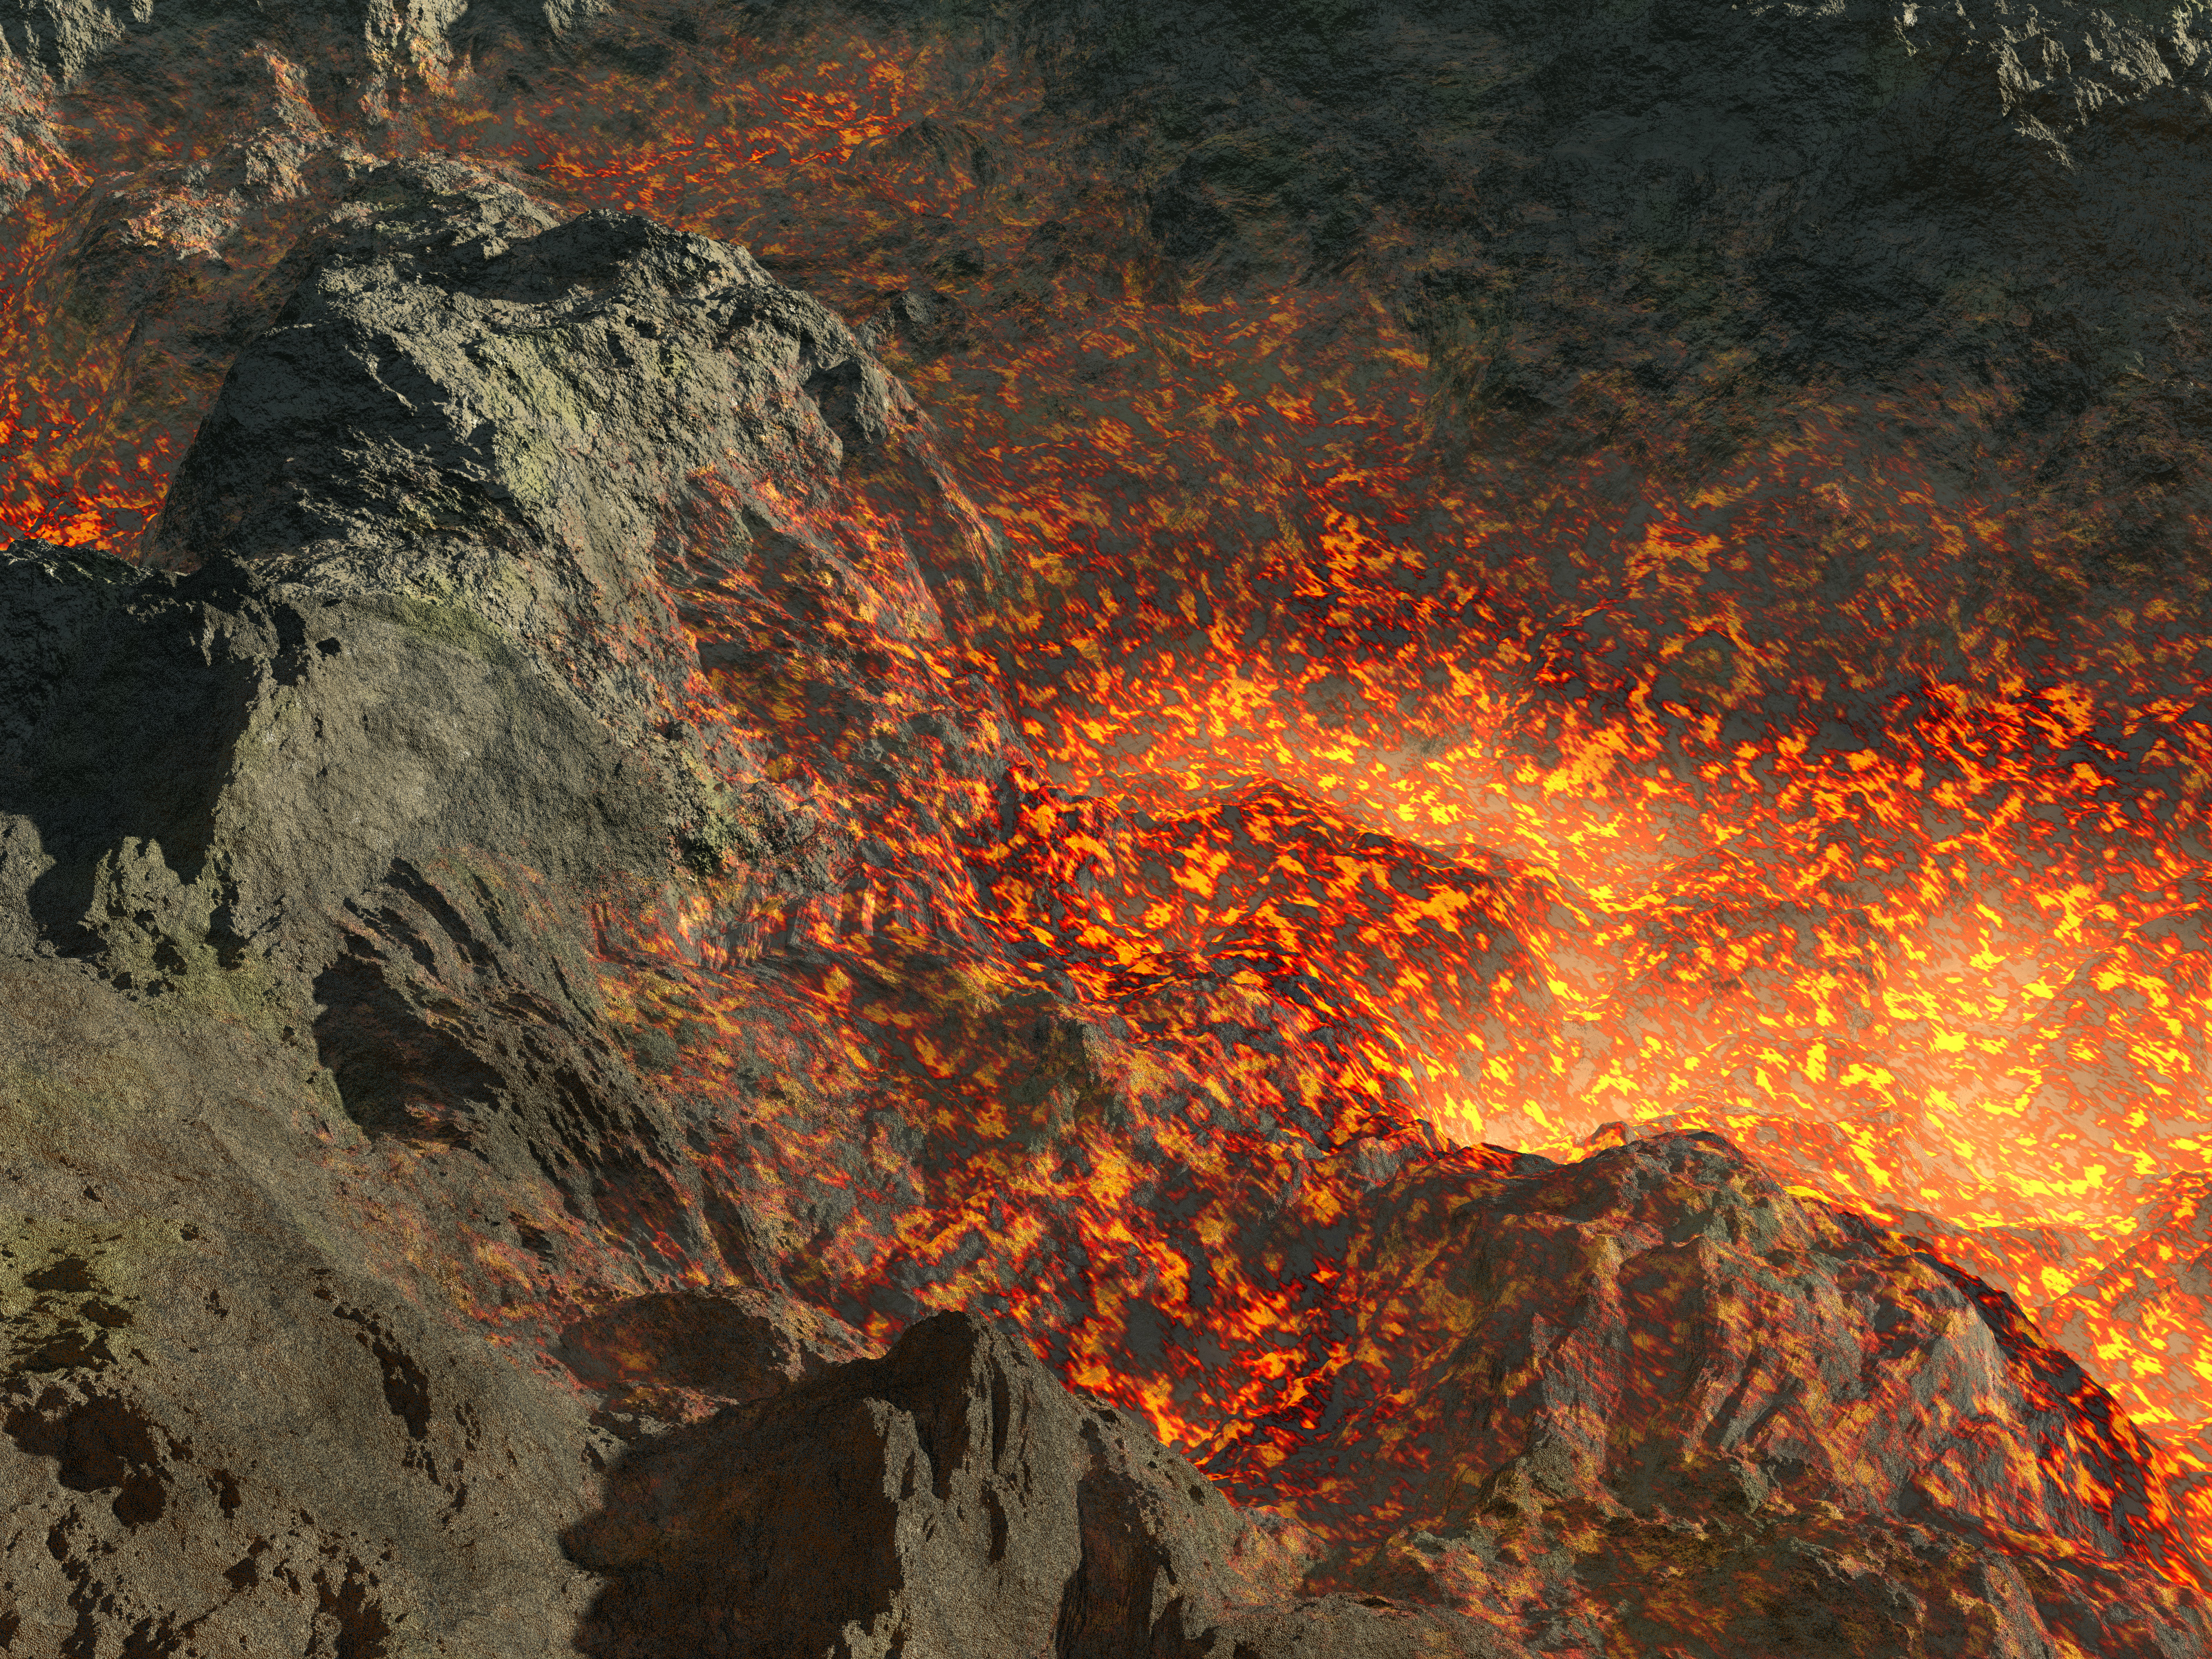 The spectacular Soufirere Hills Volcano has been erupting since 1995